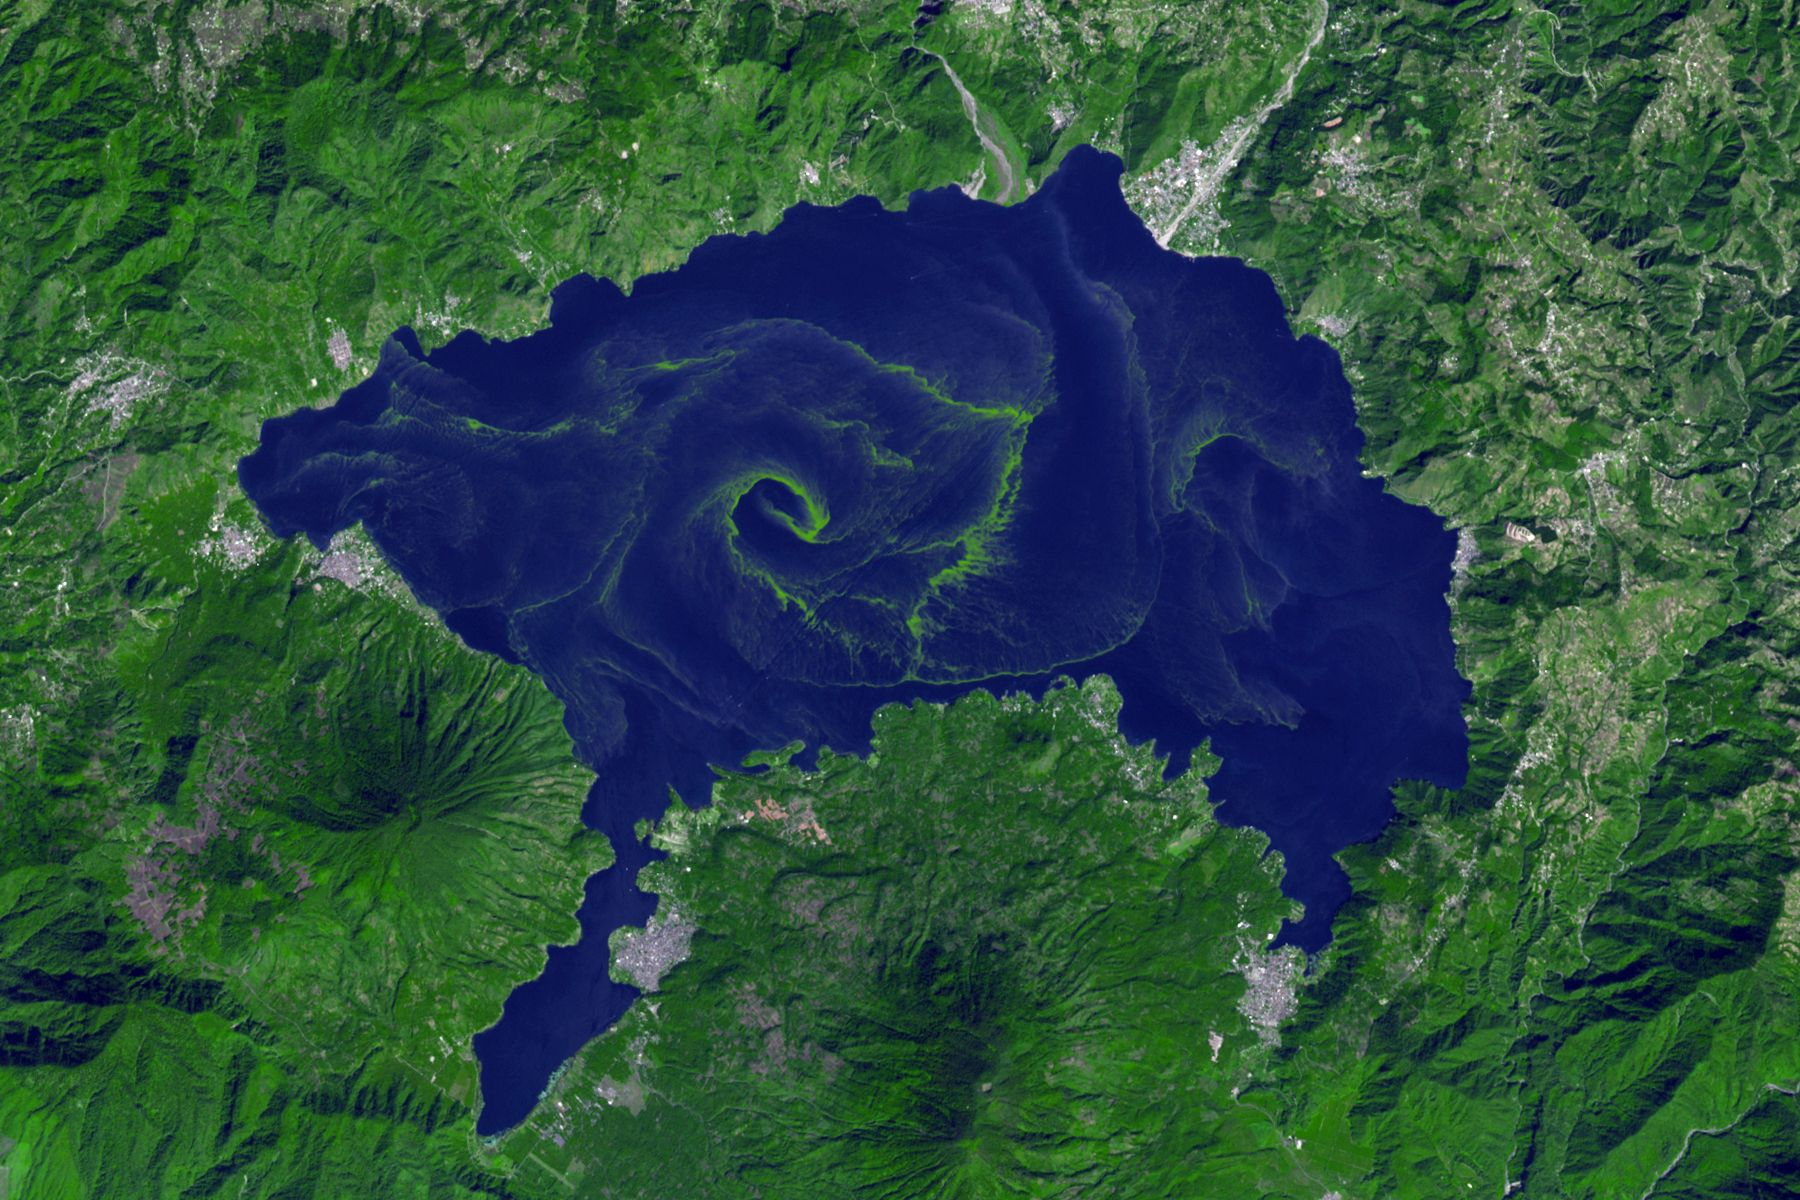 Entire systems can change! Over 70% of USA coastline is affected by nutrient pollution.